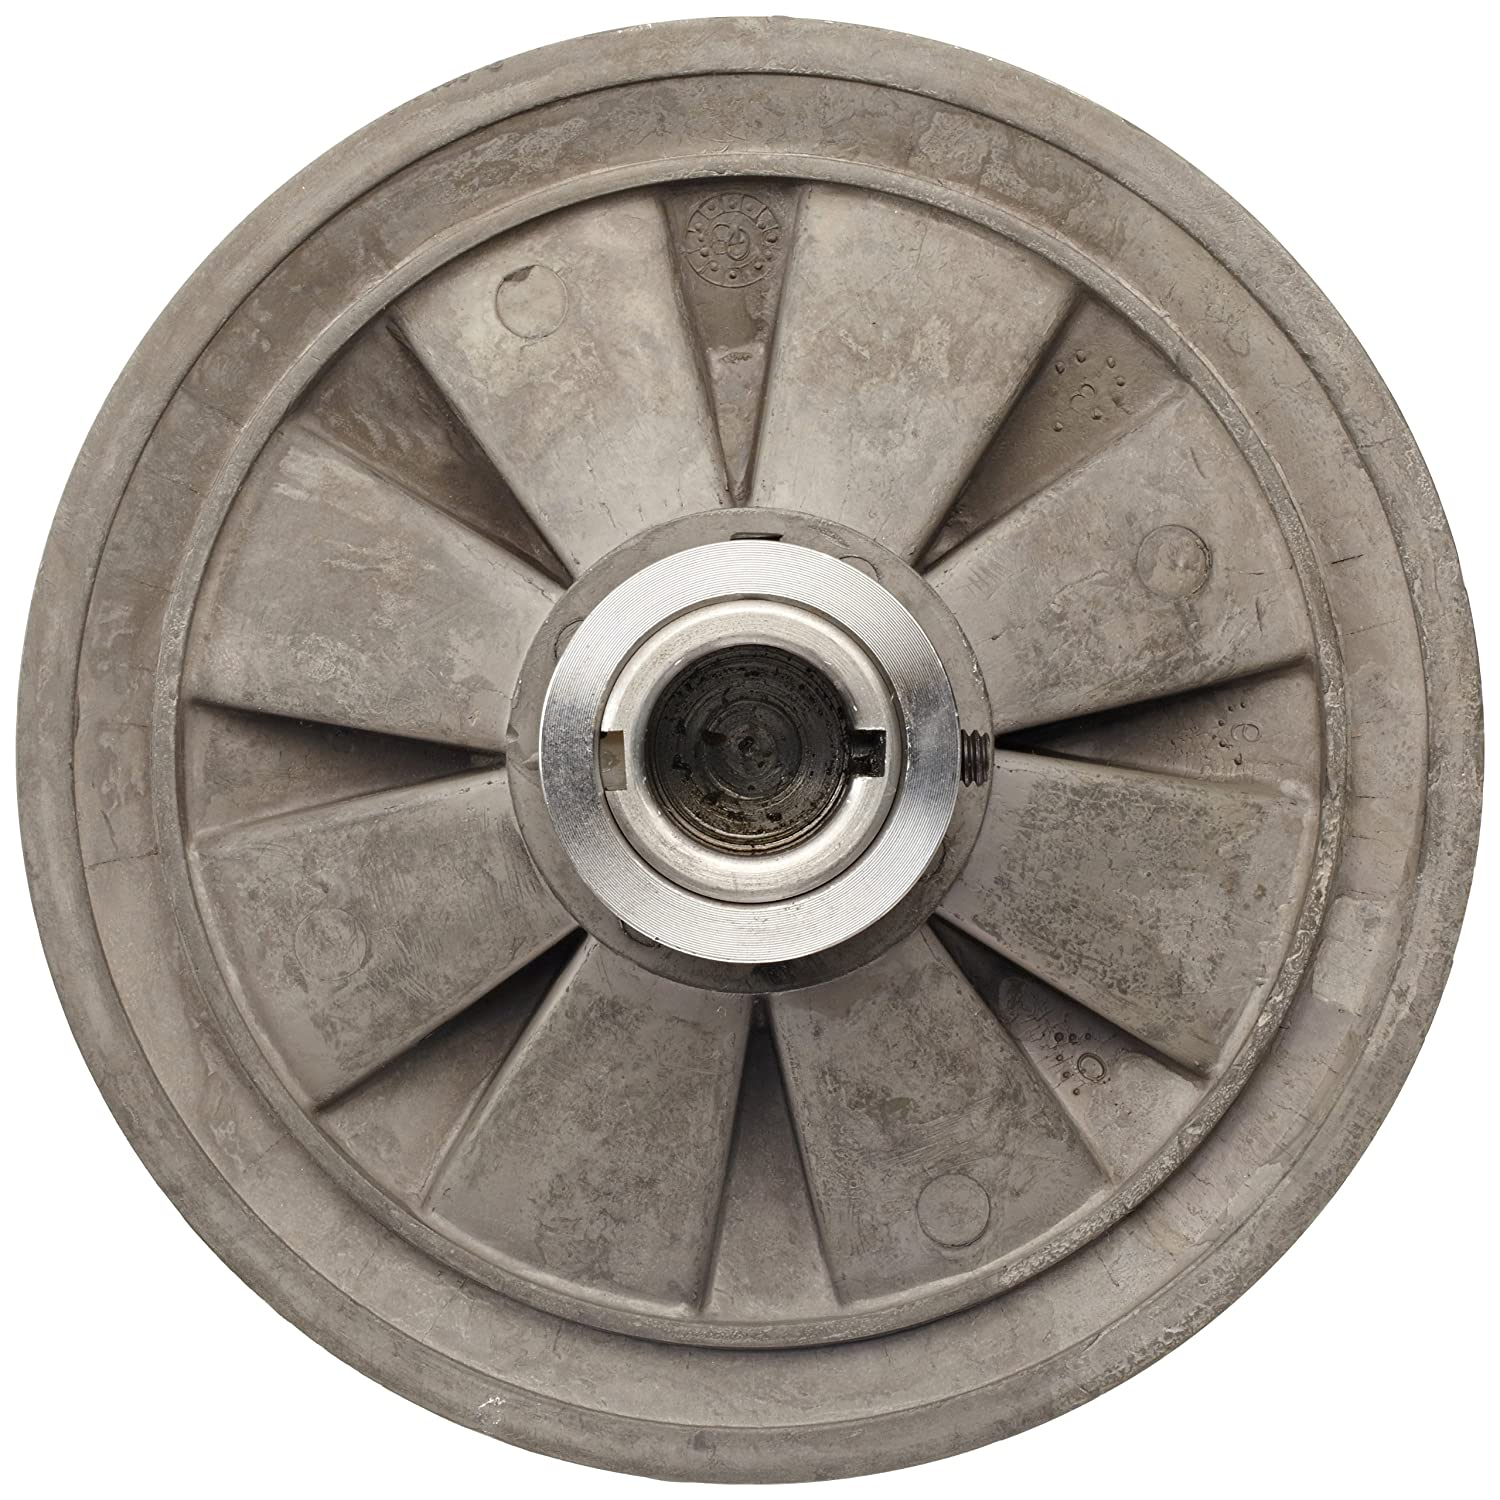 Lovejoy 170 Aluminoline Variable Speed Pulley 3//4 Bore 7.13 Overall Length 6.31 OD 27 inch-pounds Torque Capacity